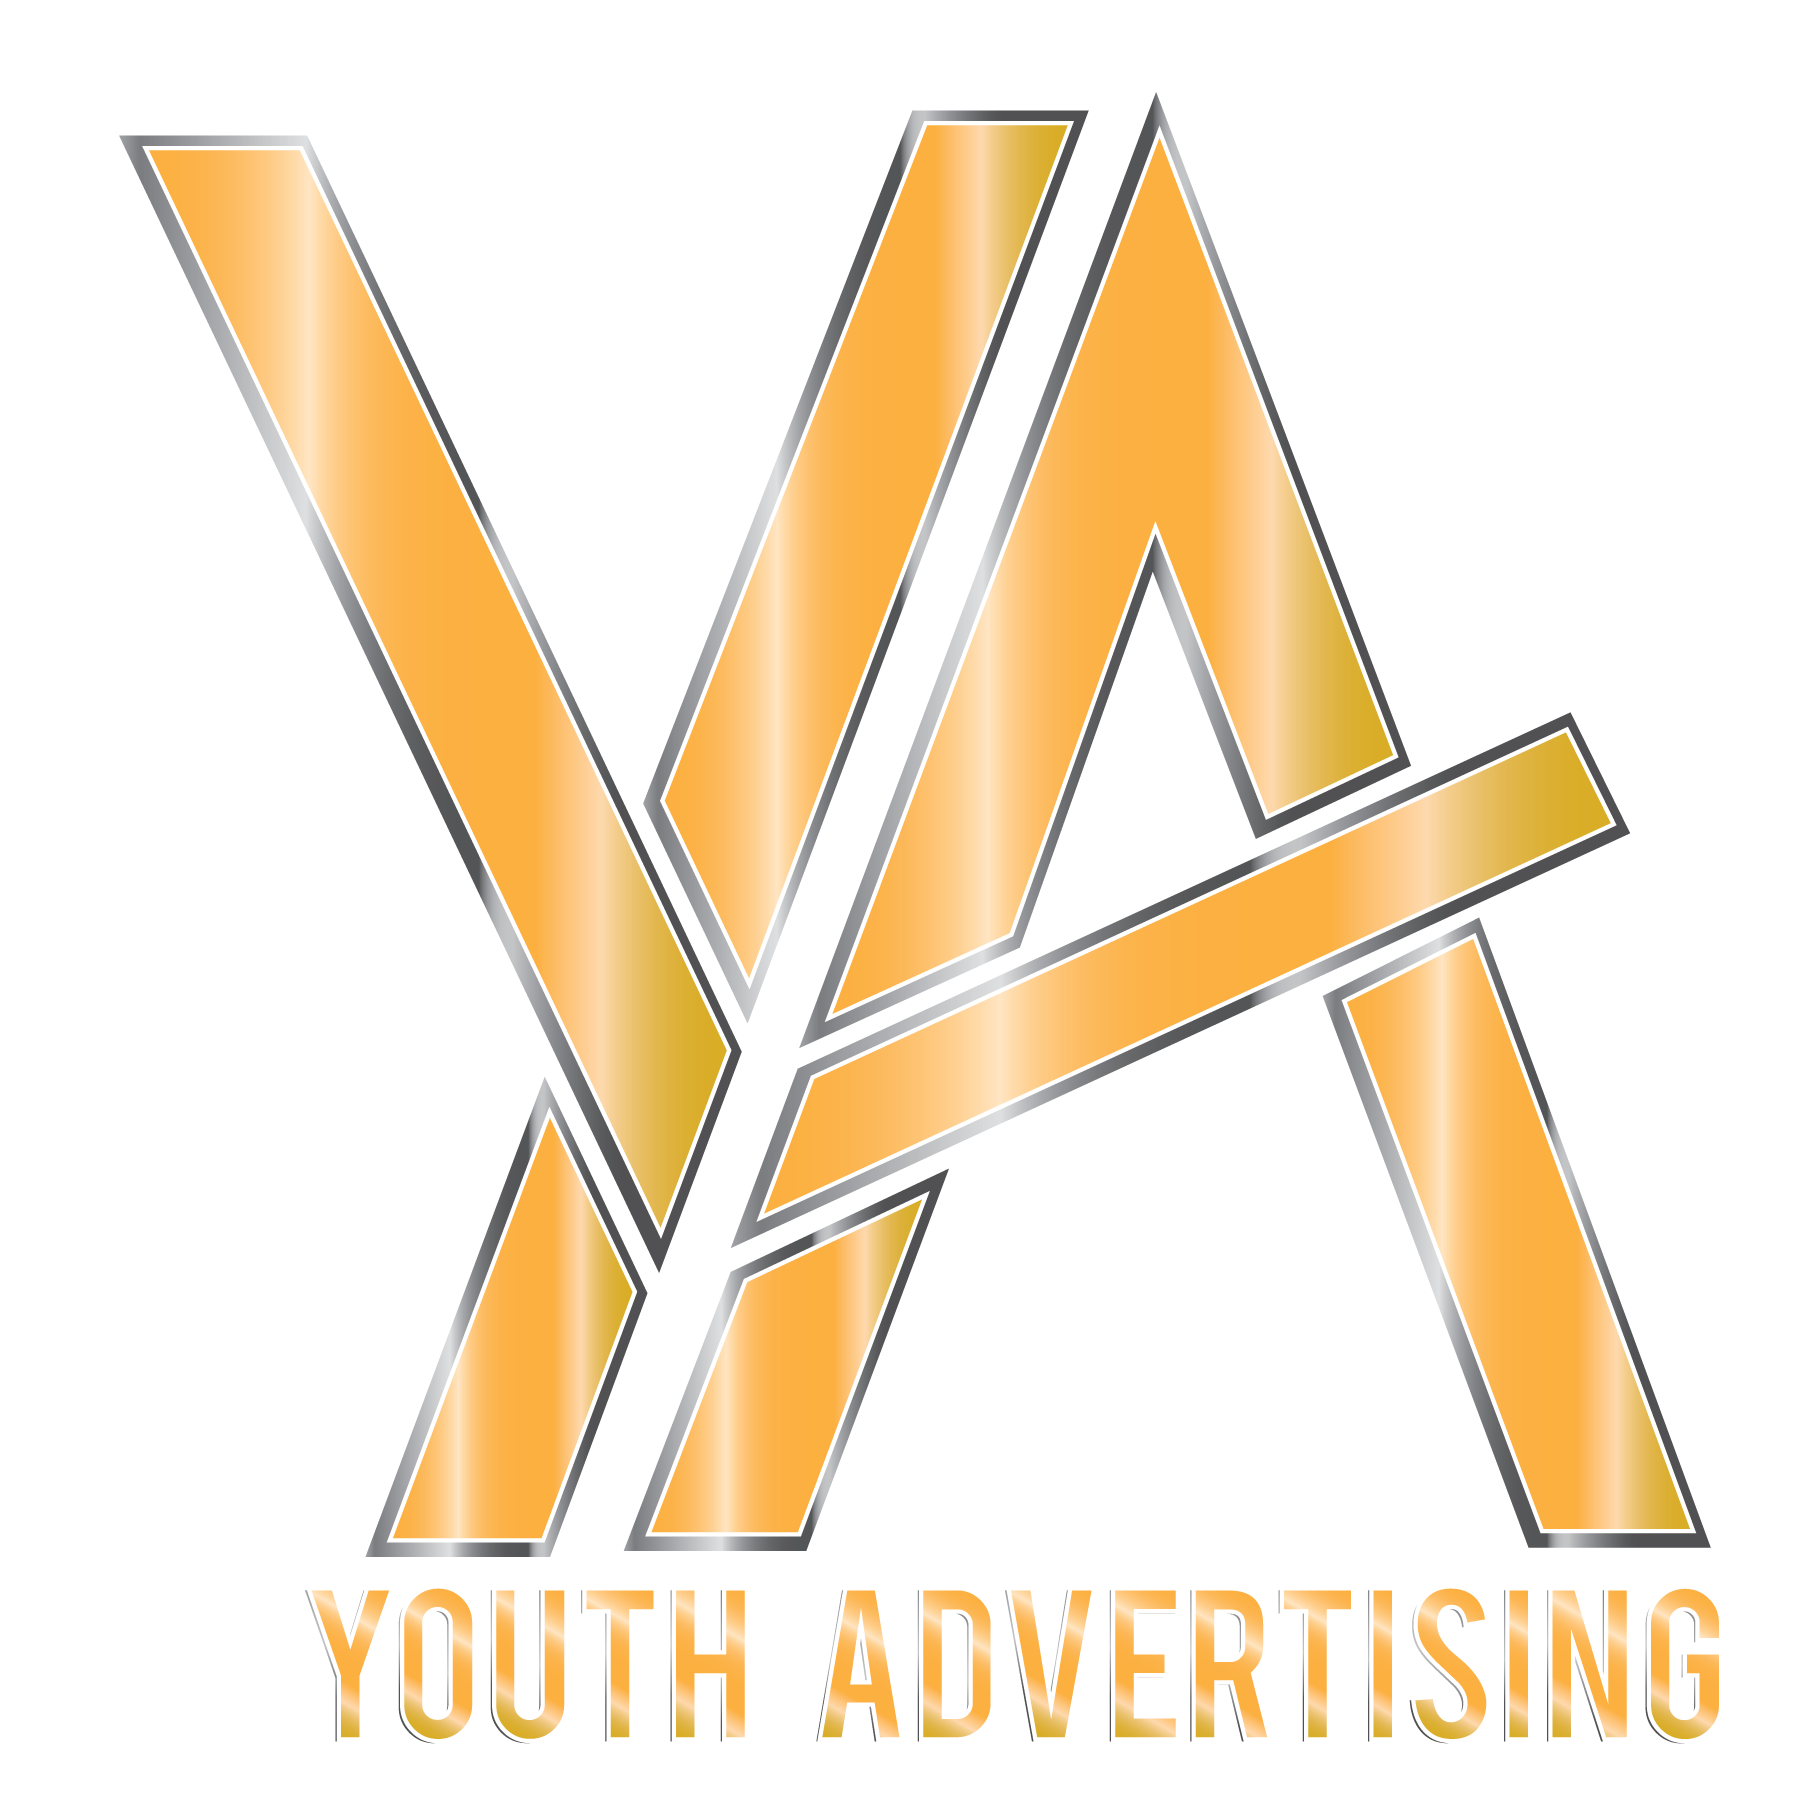 youthadvertisingBOLD-04.png